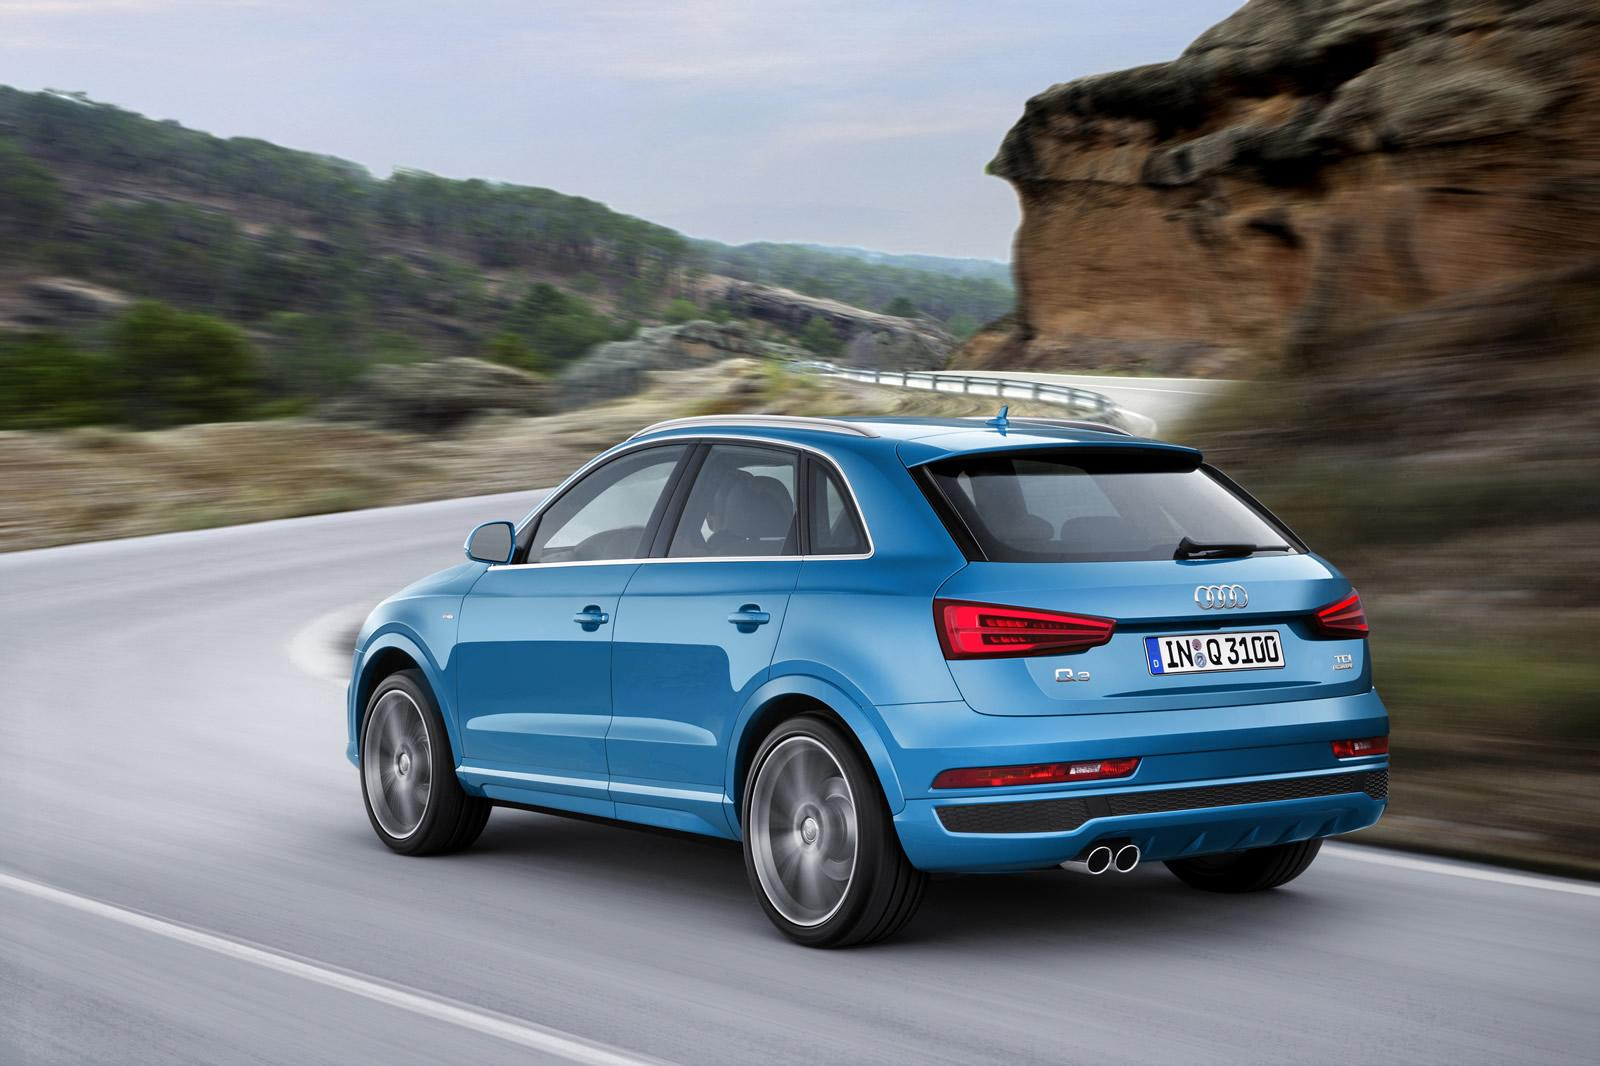 audi cars news 2015 q3 facelift unveiled rs q3 boosted to 250kw 450nm. Black Bedroom Furniture Sets. Home Design Ideas